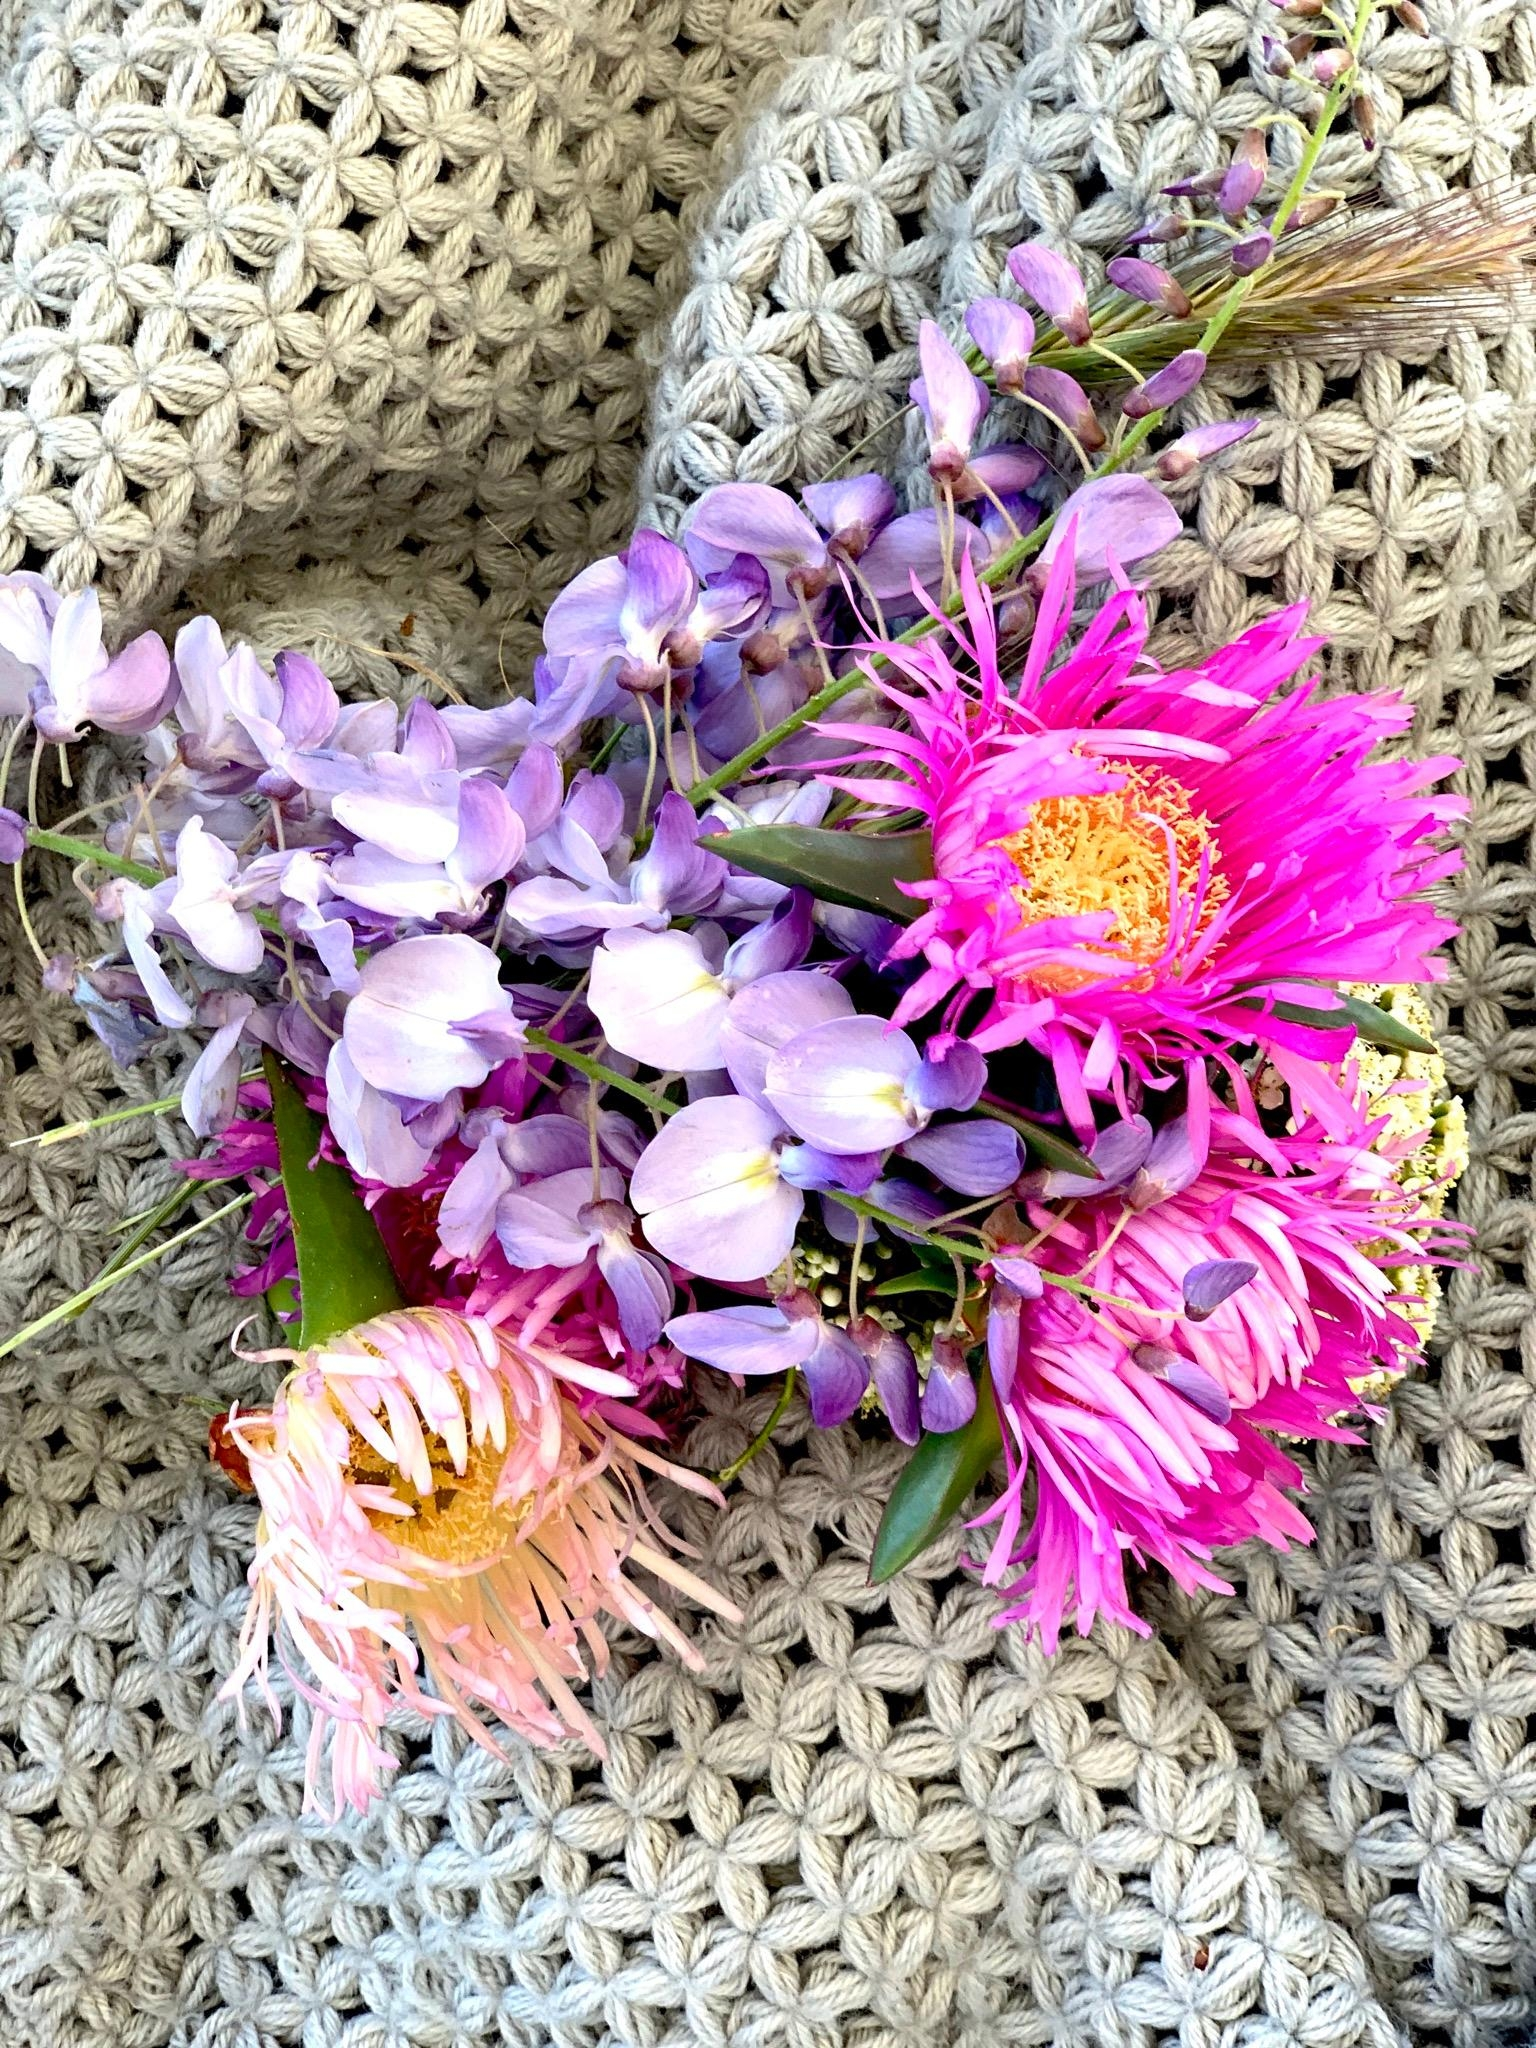 #freshflowers for you! ❤️ #couchliebt #couchstyle #istanbul #städtereise